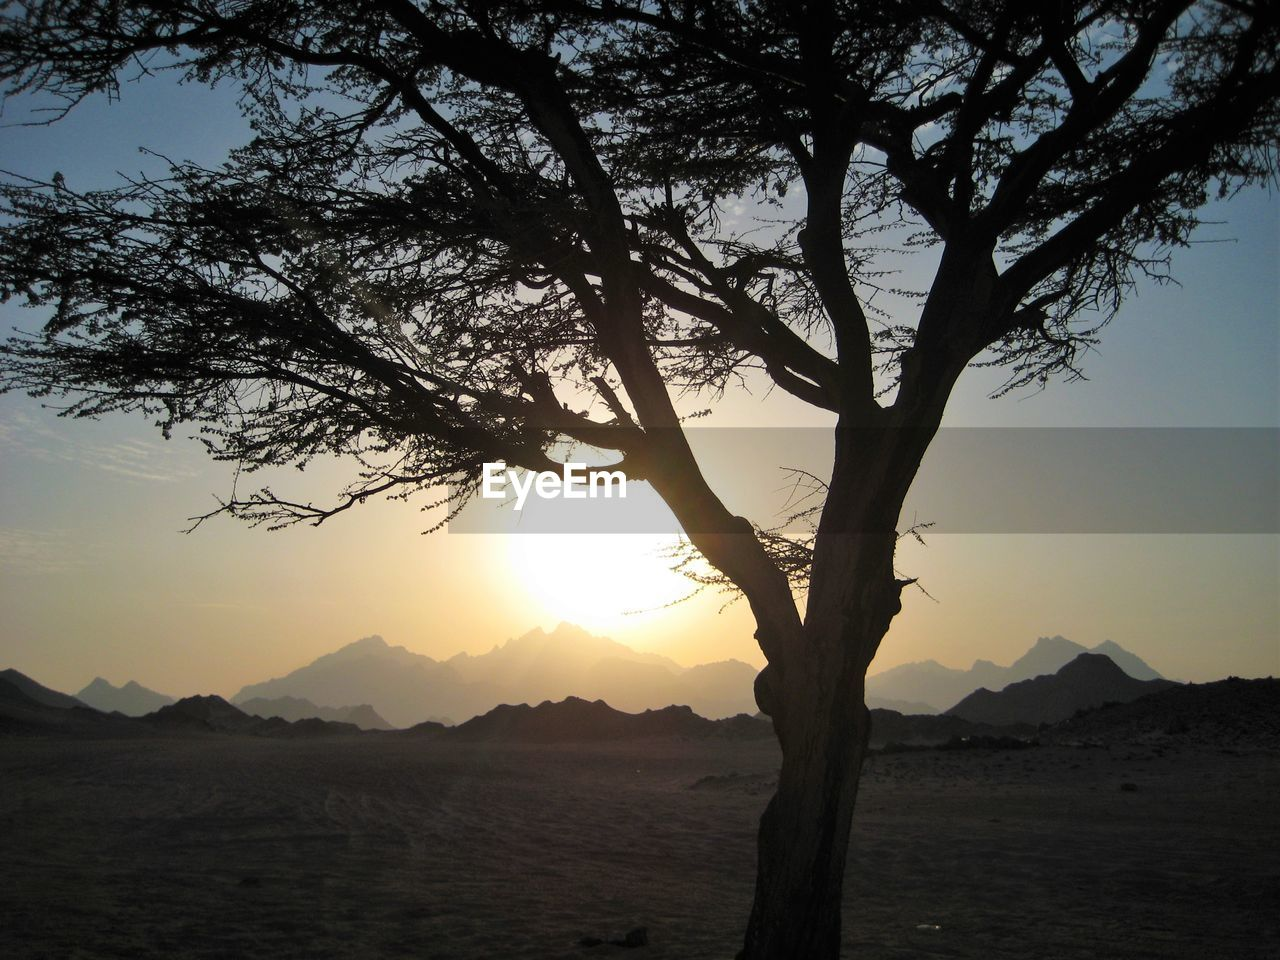 Silhouette Of Trees In Front Of Mountains During Sunset